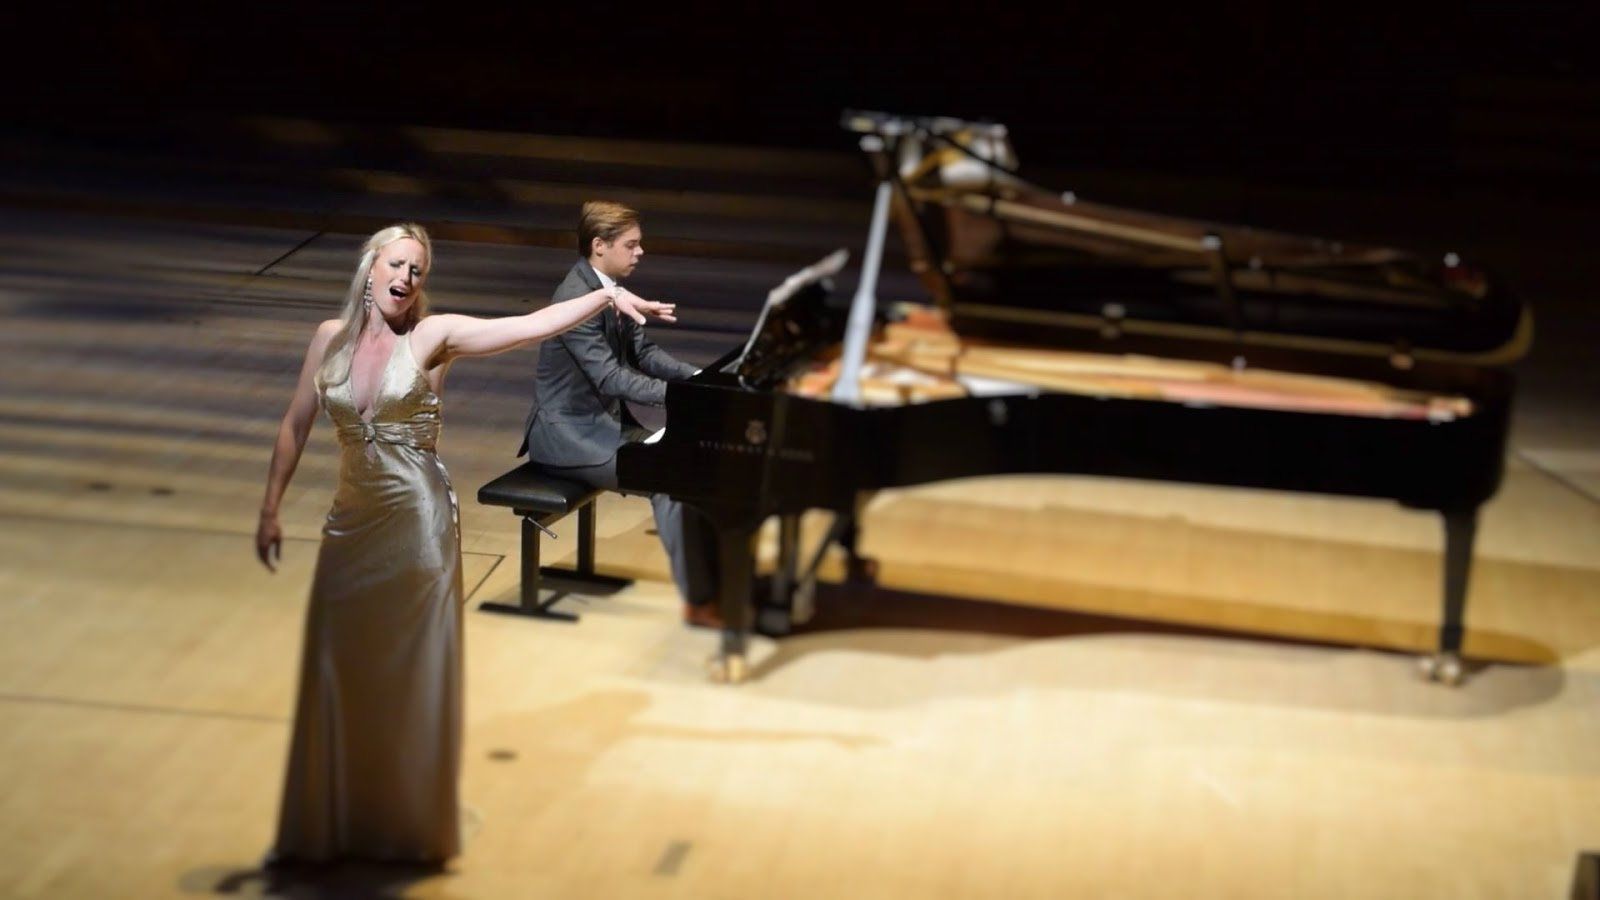 Introducing the art of bel canto - the London Bel Canto Festival